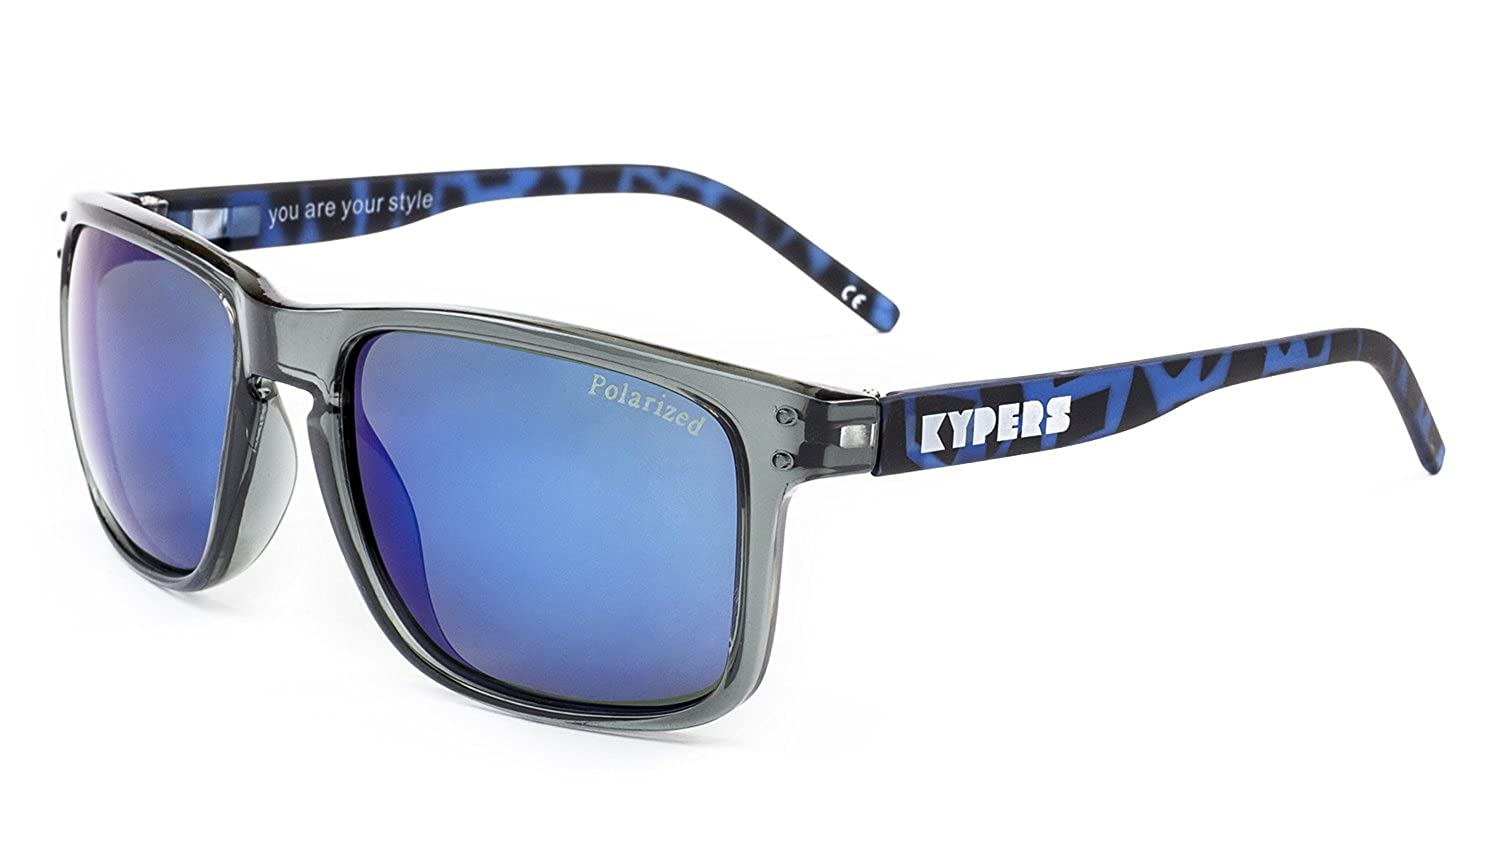 KYPERS Coconut Gafas de sol, Clear Grey - Blue Mirror, 57 Unisex